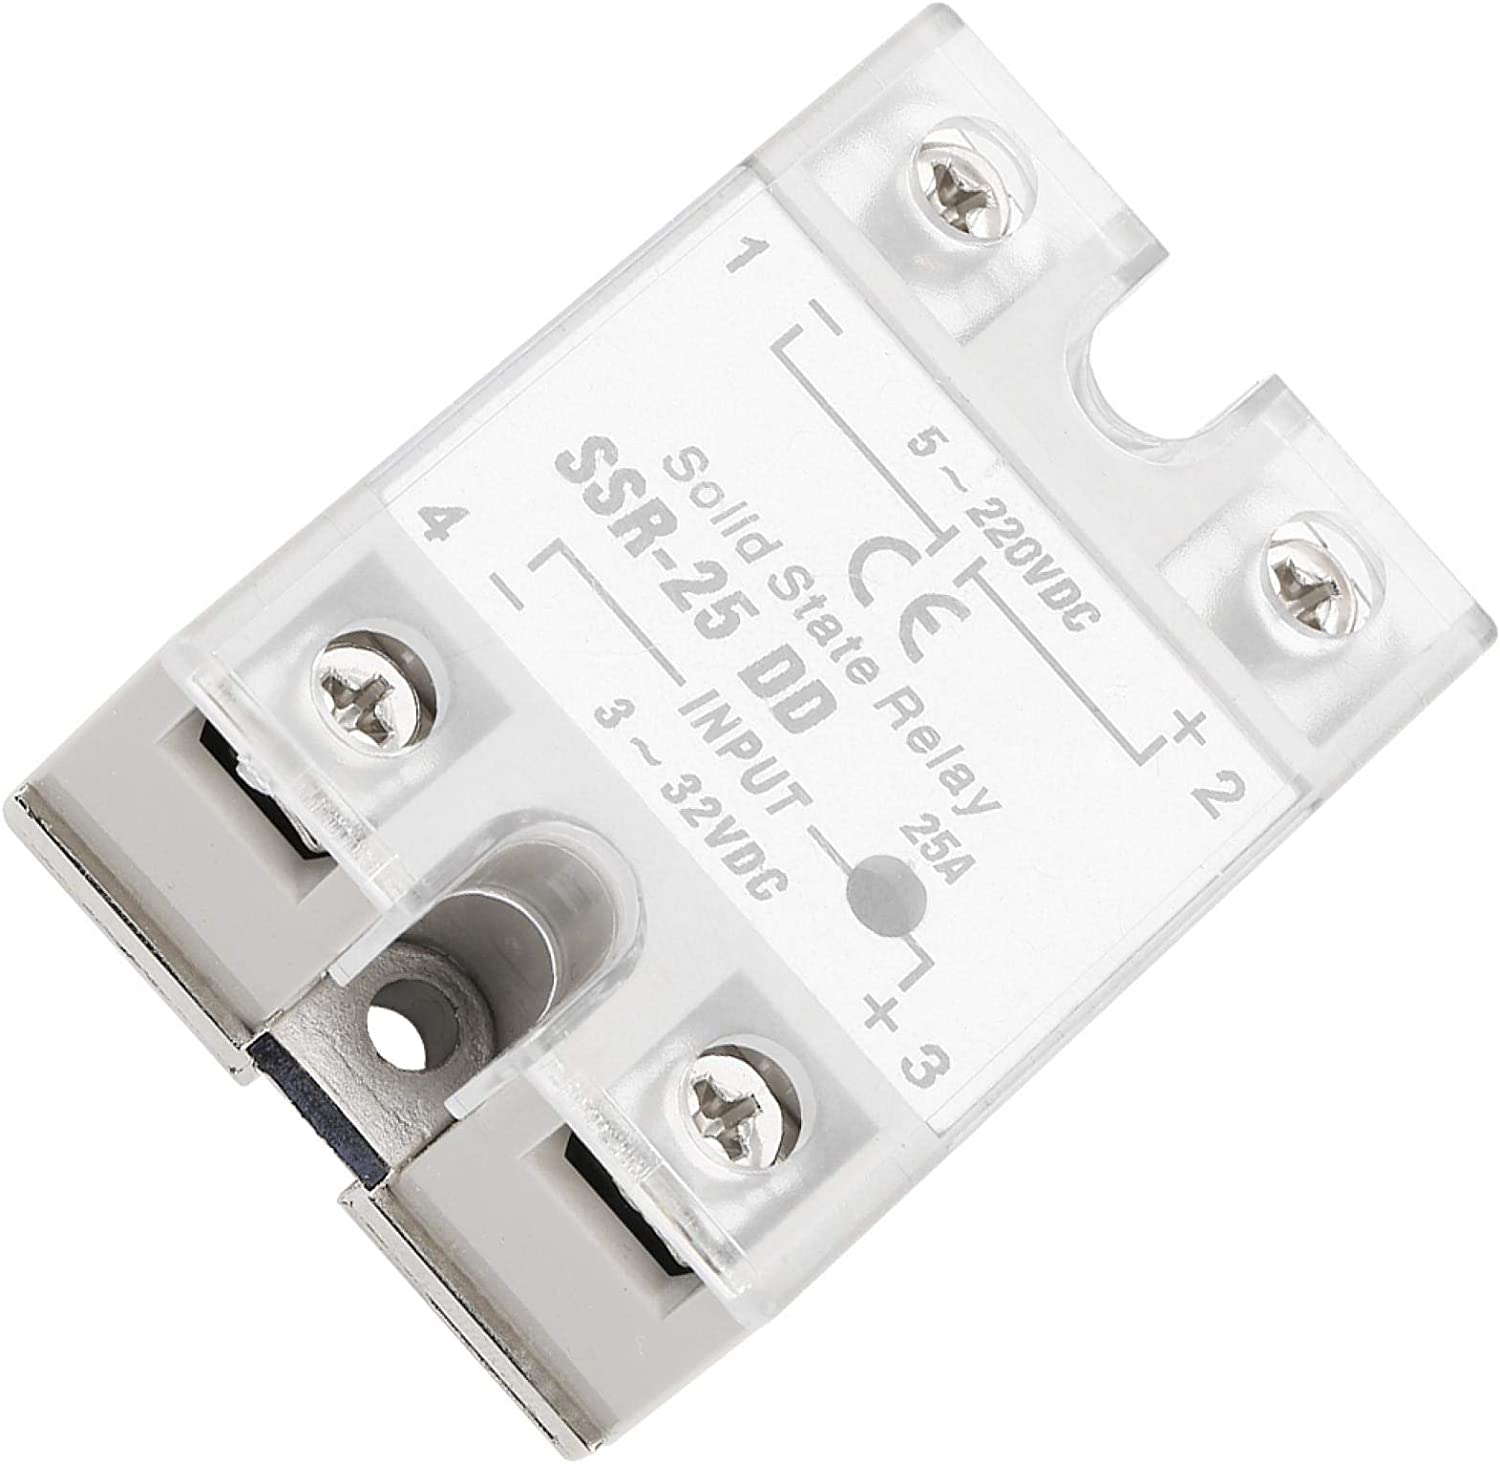 SSR-25 DD 25A DC-DC Universal Solid State Relay Module, Input Voltage dC 3-32V, Output Voltage DC 5-220V, Single Phase Semi-Conductor Relay for Industrial Automation Process